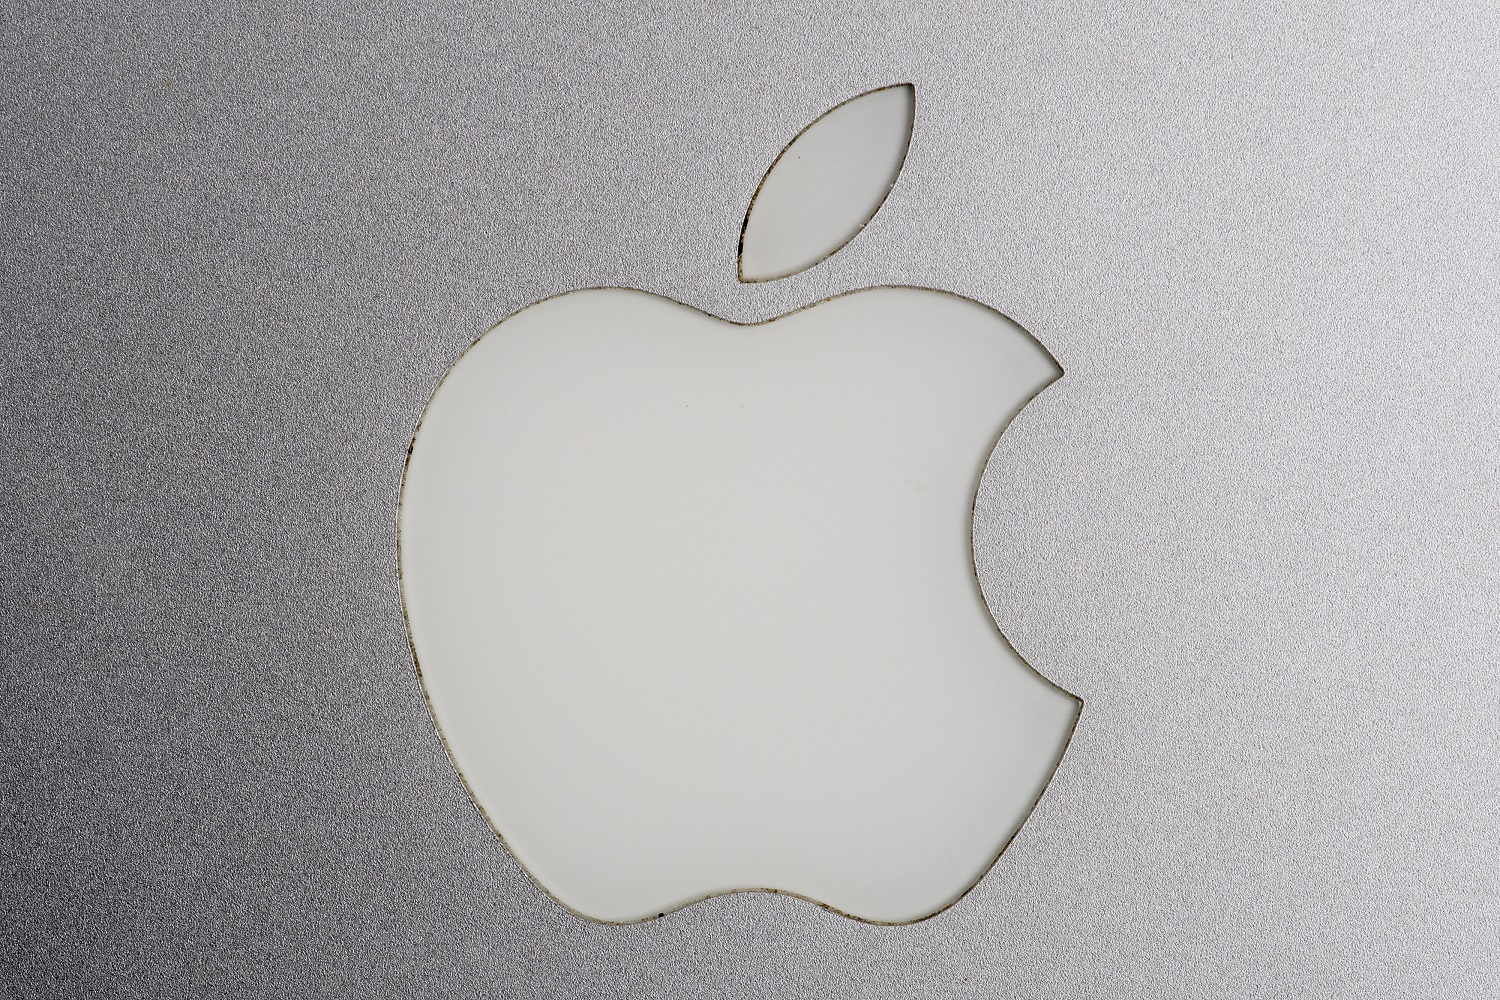 Apple Said To Start Making Chips For Mac